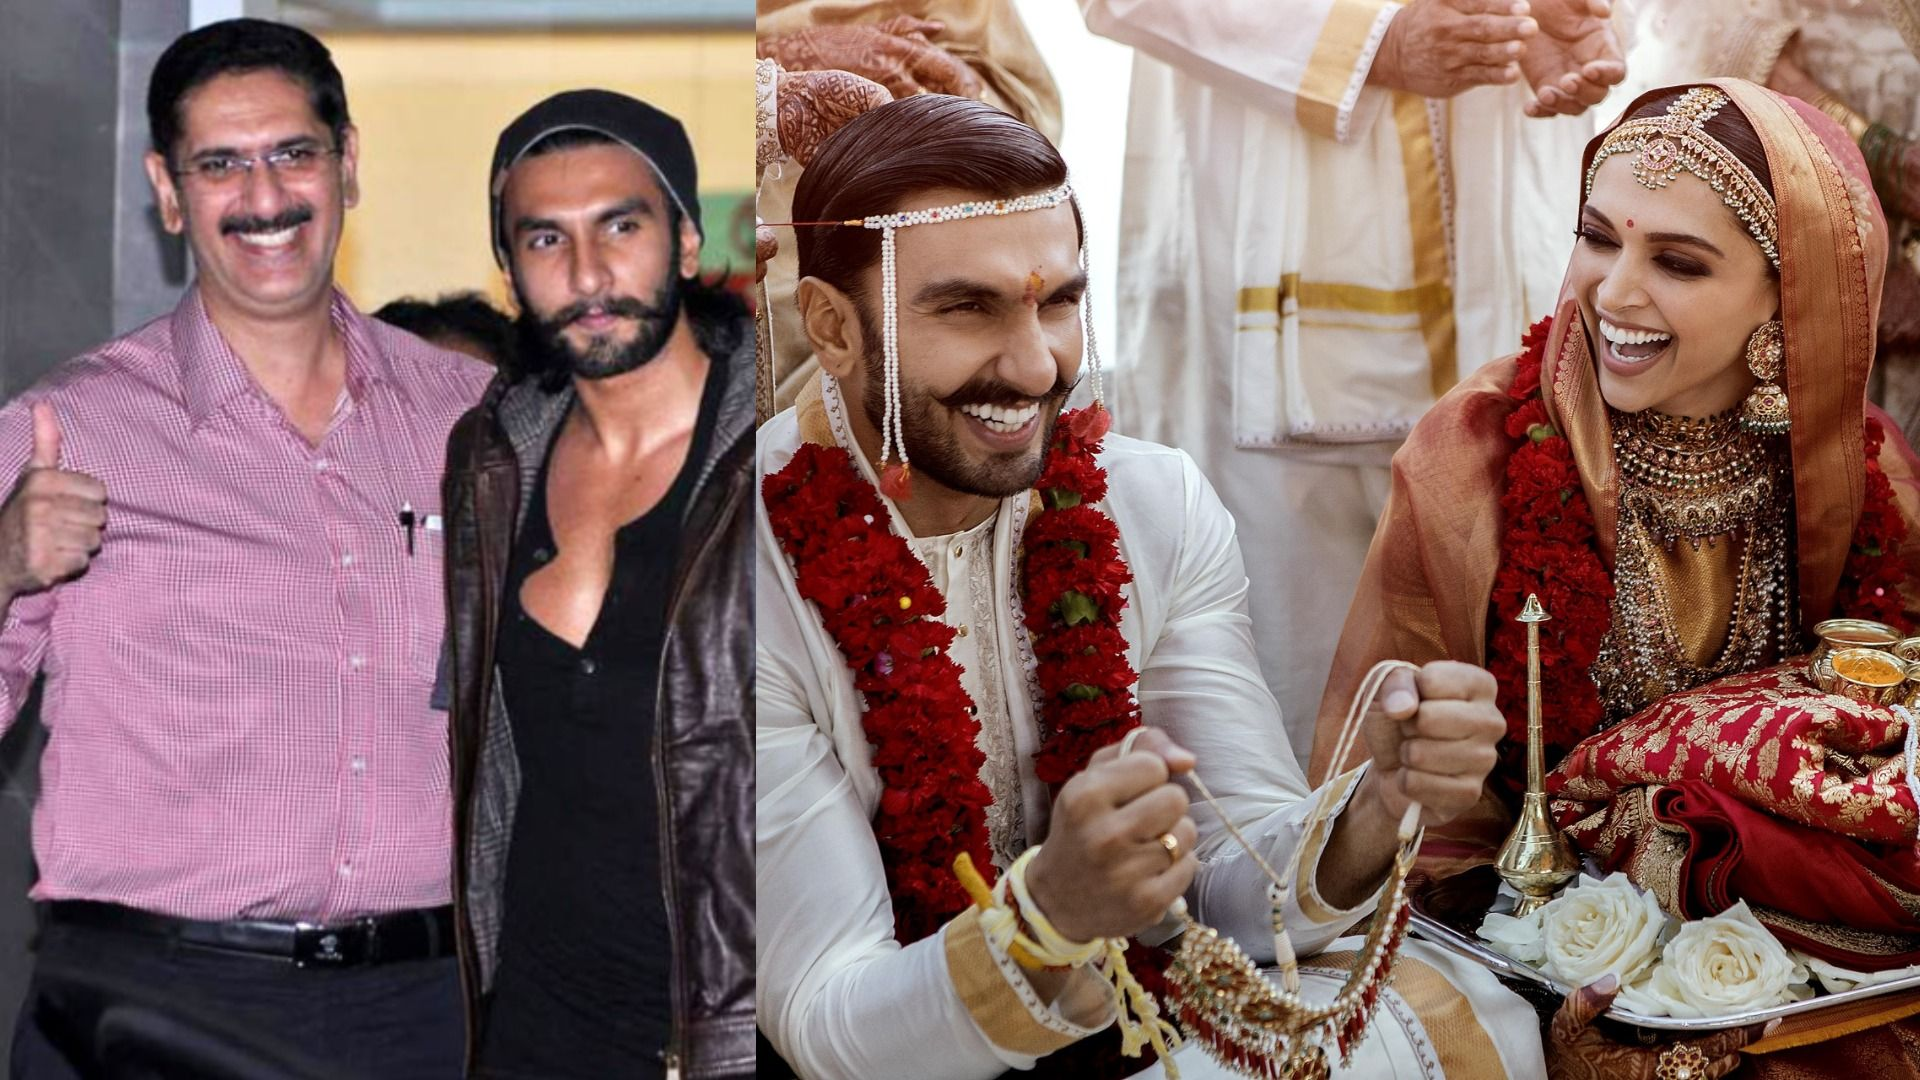 Ranveer Singh S Father Mr Jagjit Singh Bhavnani Had The Sweetest Message For His Daughter In Law Deepika Paduko Ranveer Singh Daughter In Law Deepika Padukone